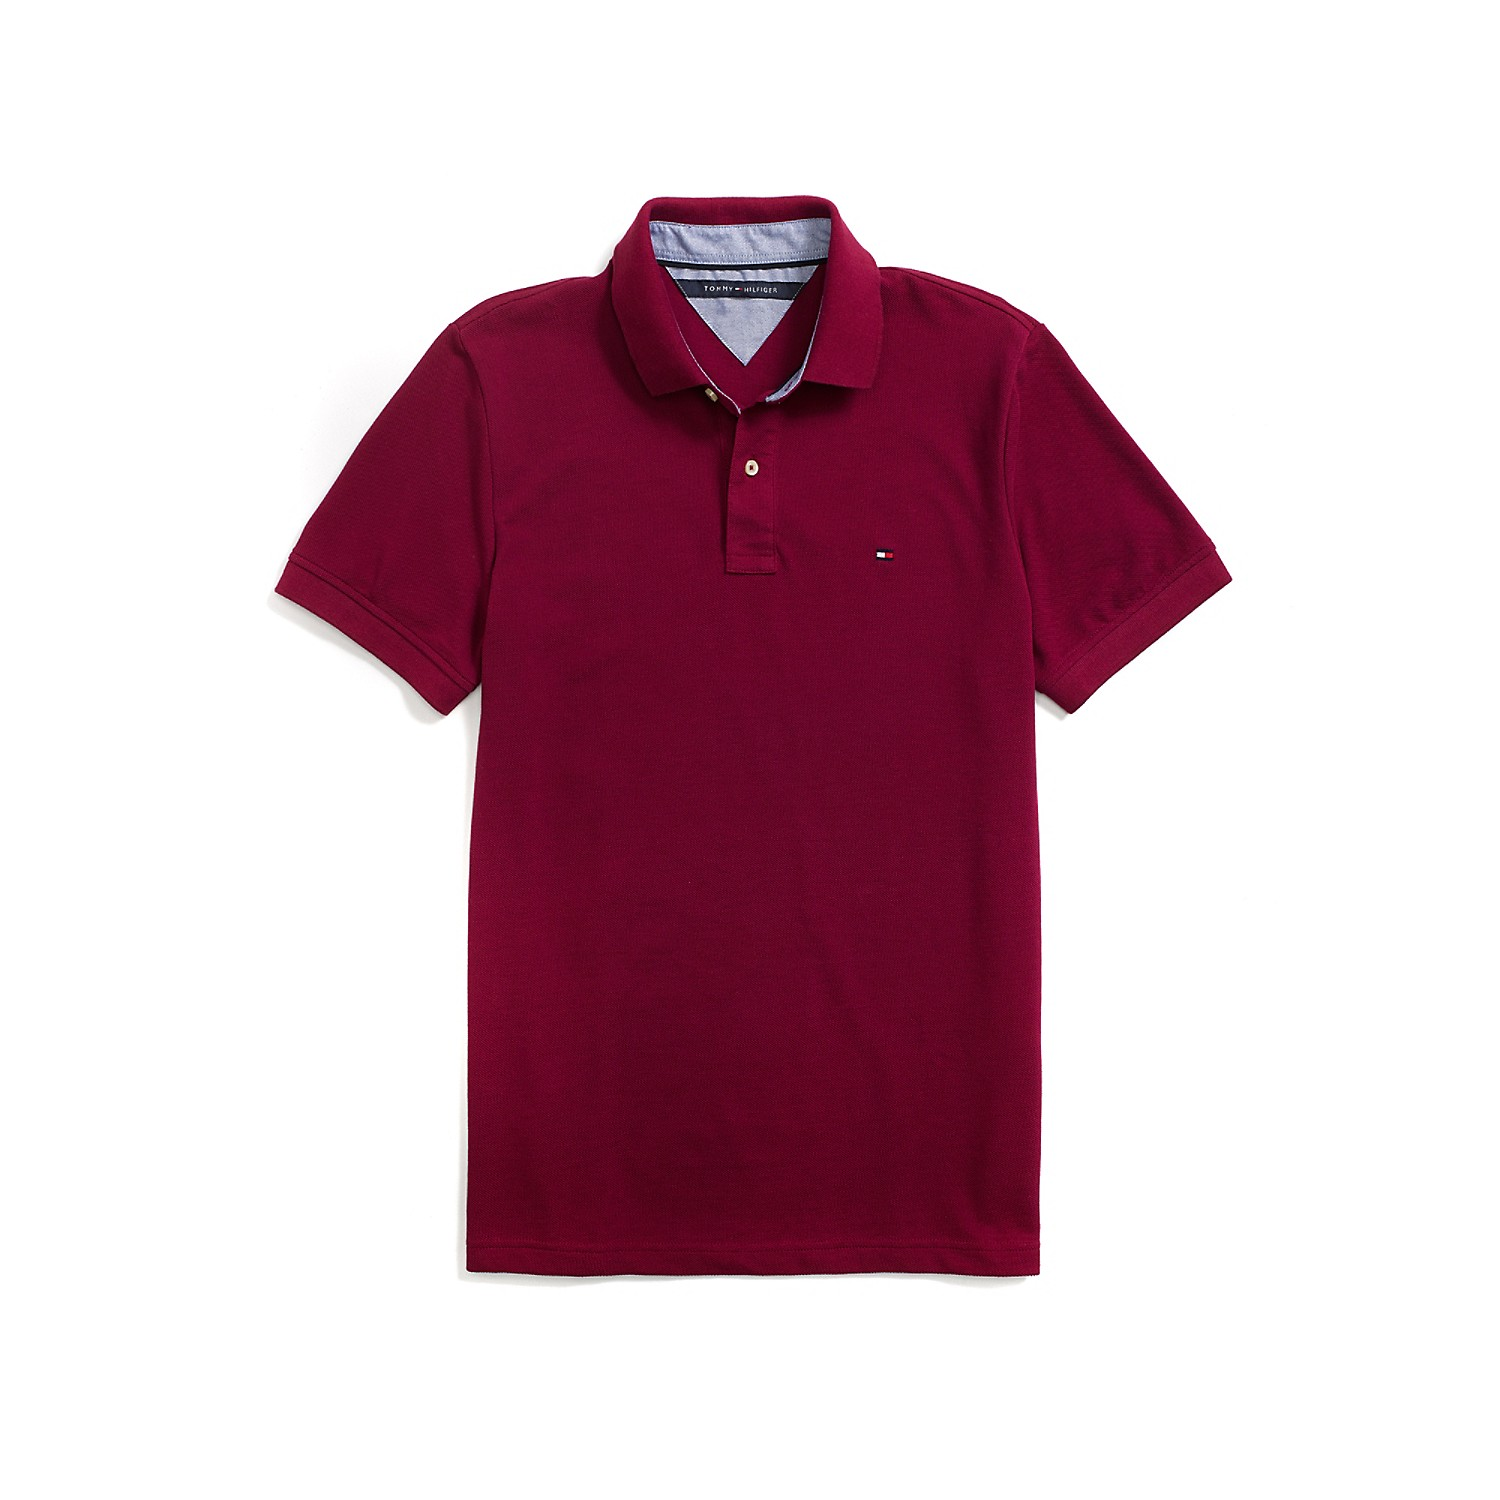 5f225bb90cf91 Tipo Polo Vino Tommy Hilfiger - Madeira ropa importada